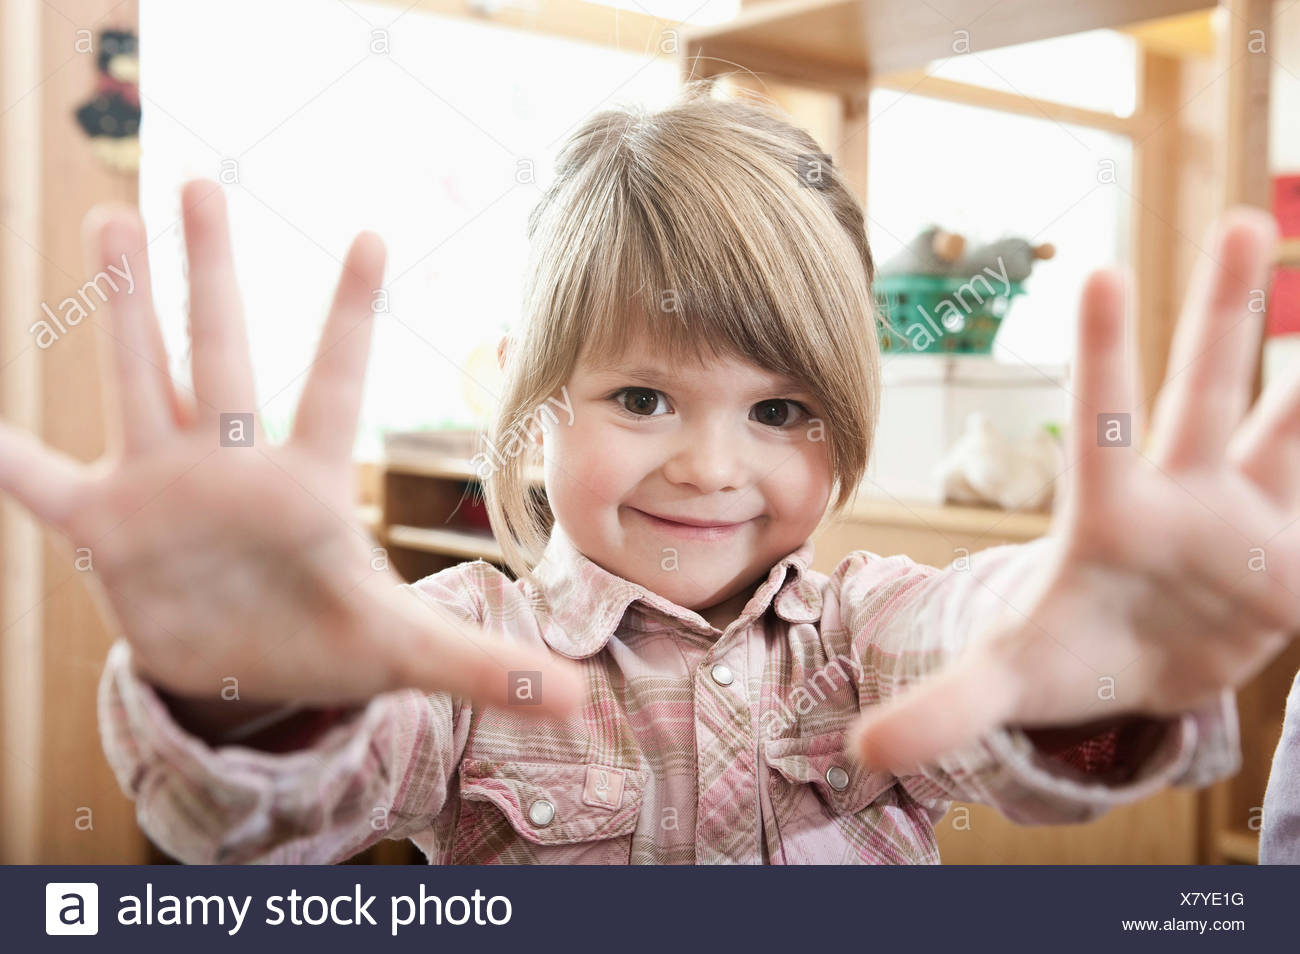 Portrait of smiling little girl showing her hands - Stock Image